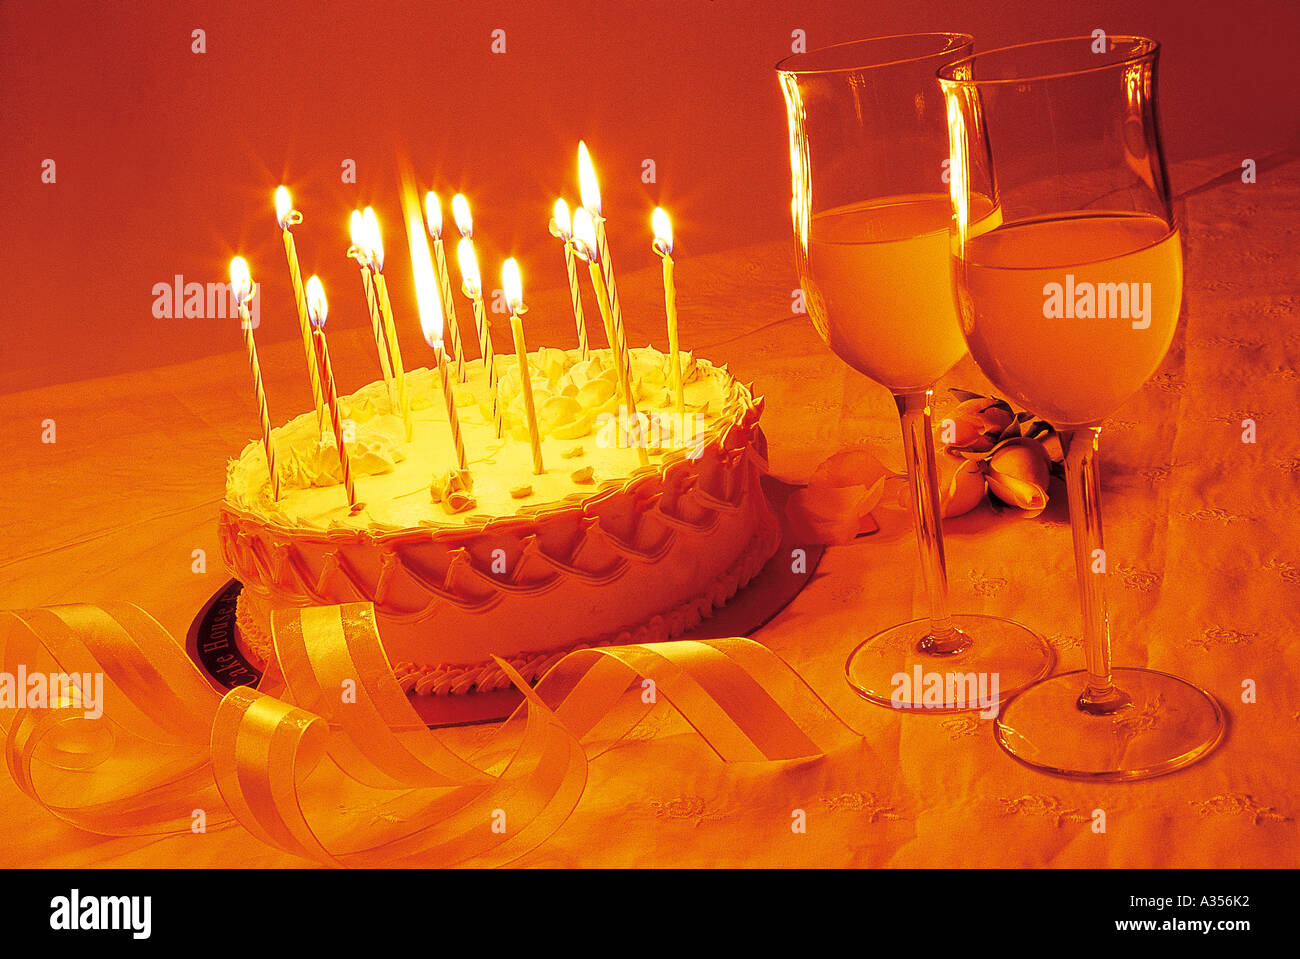 Birthday Cake And Wine Glasses On The Table Stock Photo 6099377 Alamy